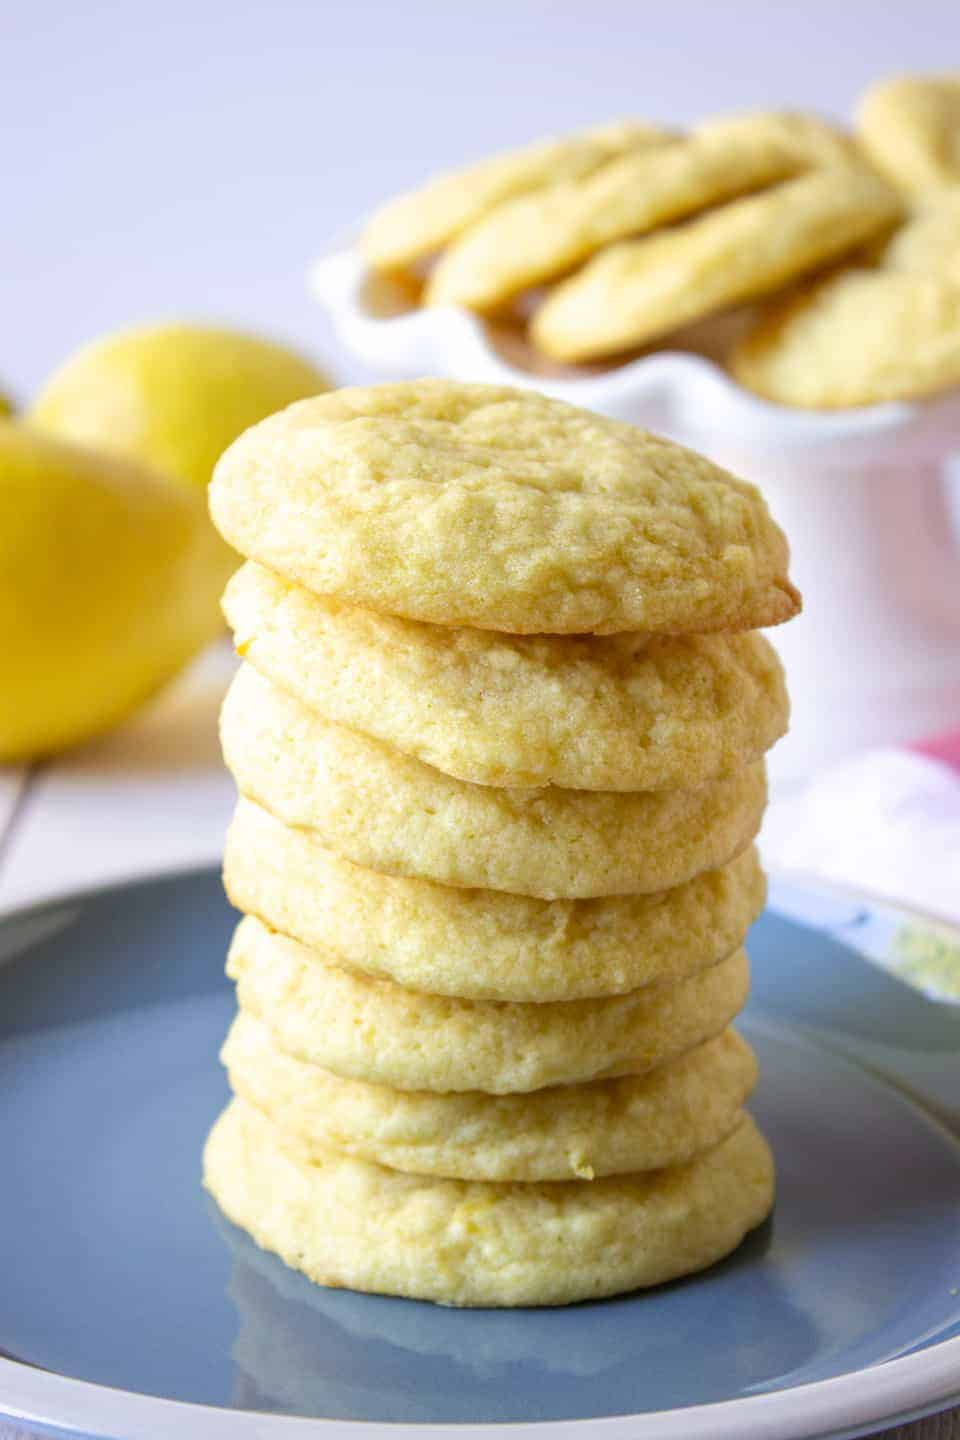 A tall stack of sugar cookies on a blue plate.